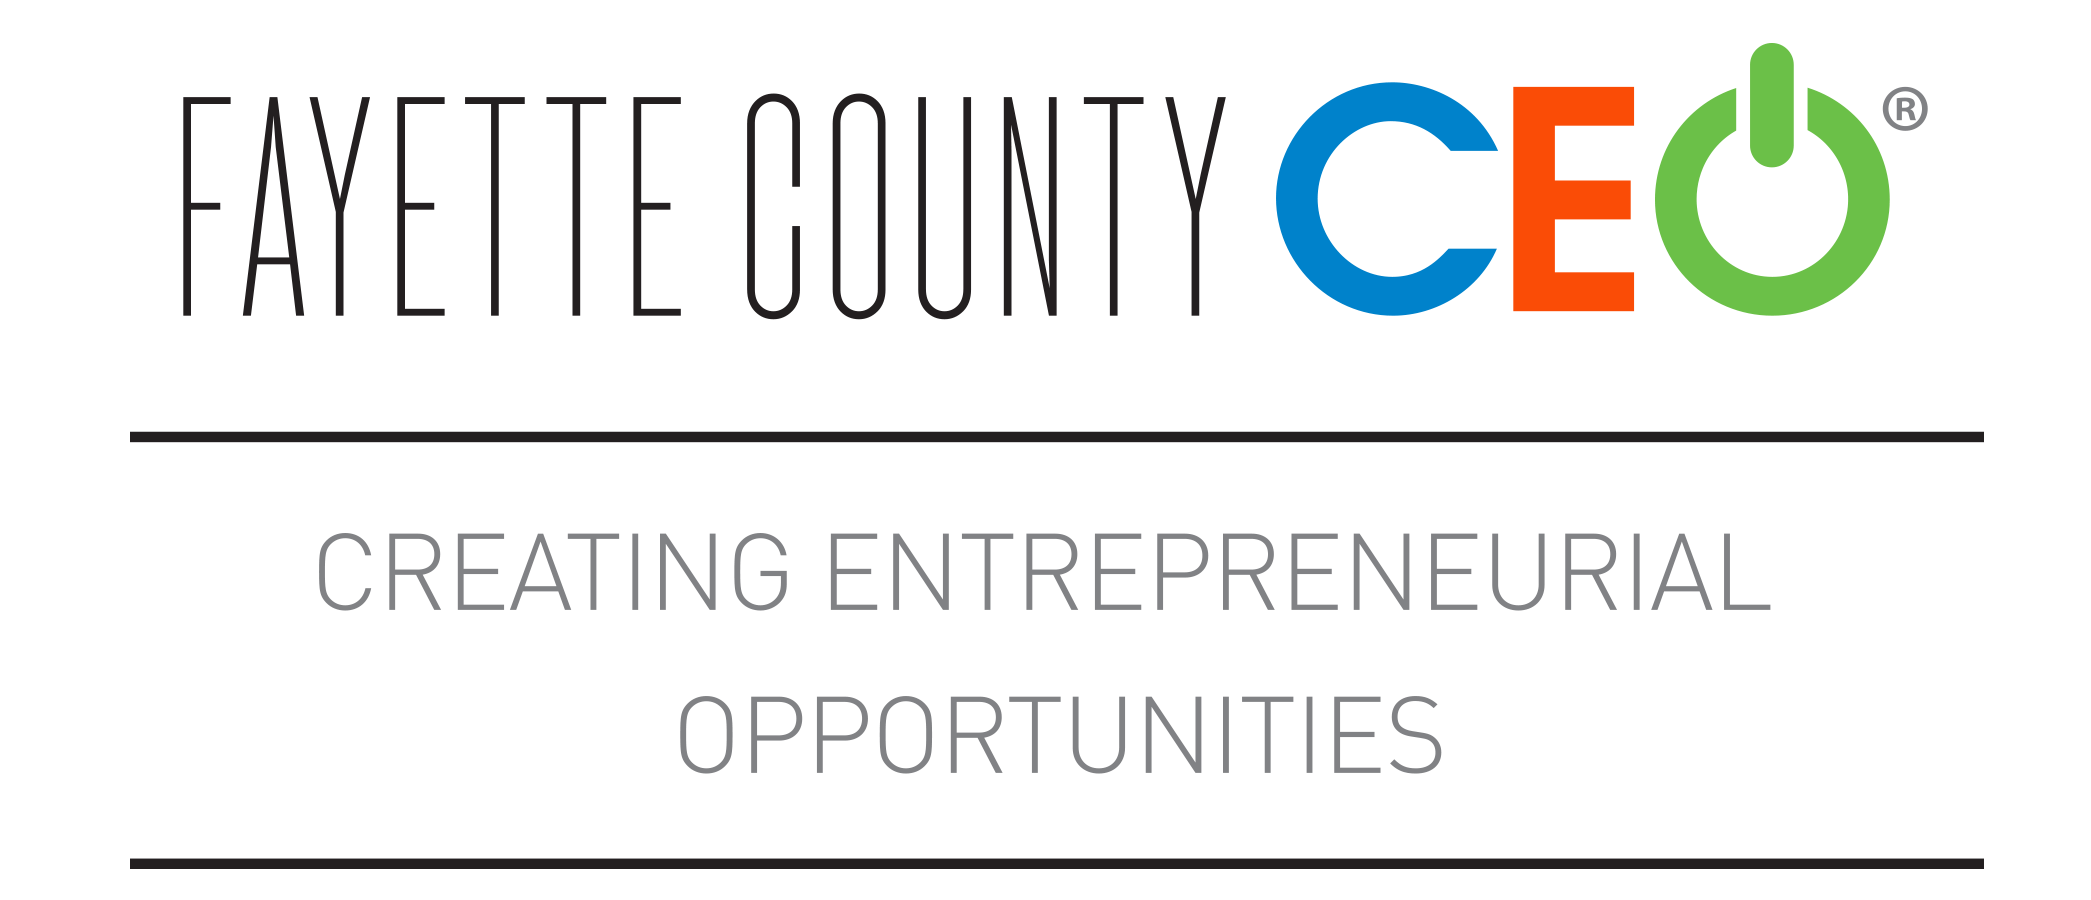 The first CEO Class for Fayette County is set to go in the Fall